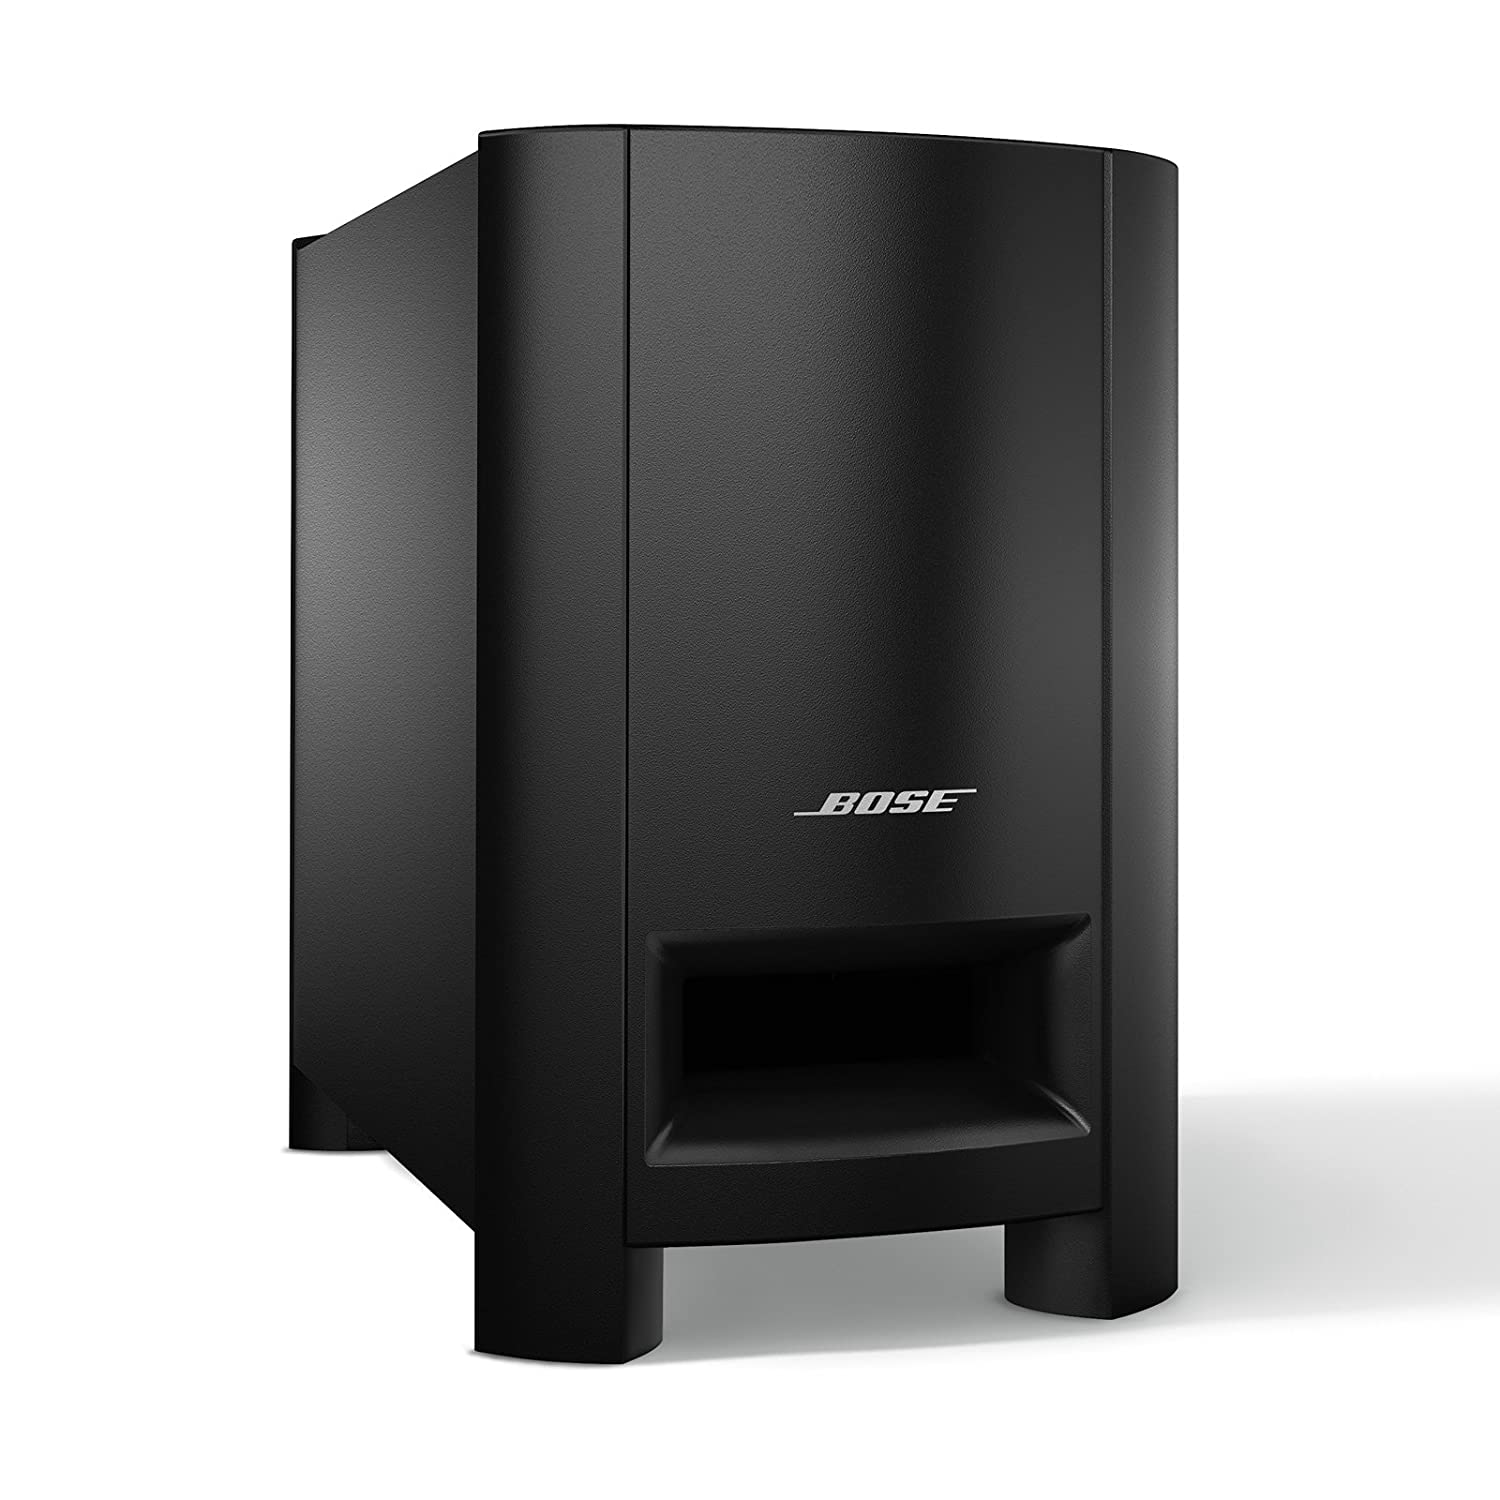 Amazon.com: Bose CineMate 15 Home Theater Speaker System, Black ...